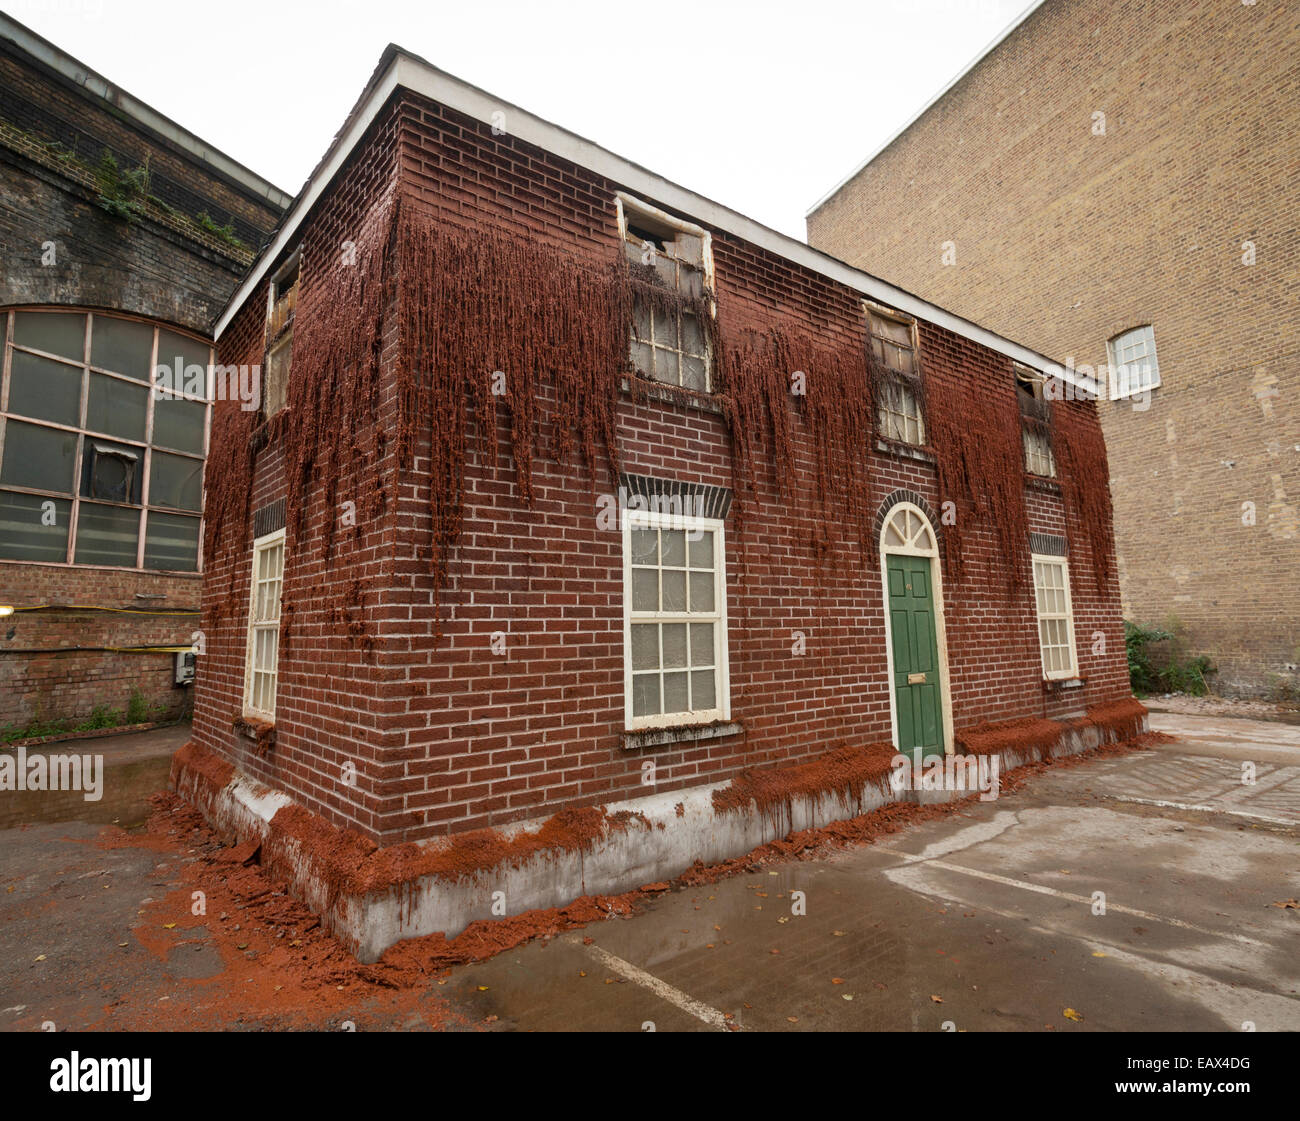 Melting House by Alex Chinneck 40 Southwark St London, SE1. Artwork made of wax and heated slowly to melt it over - Stock Image